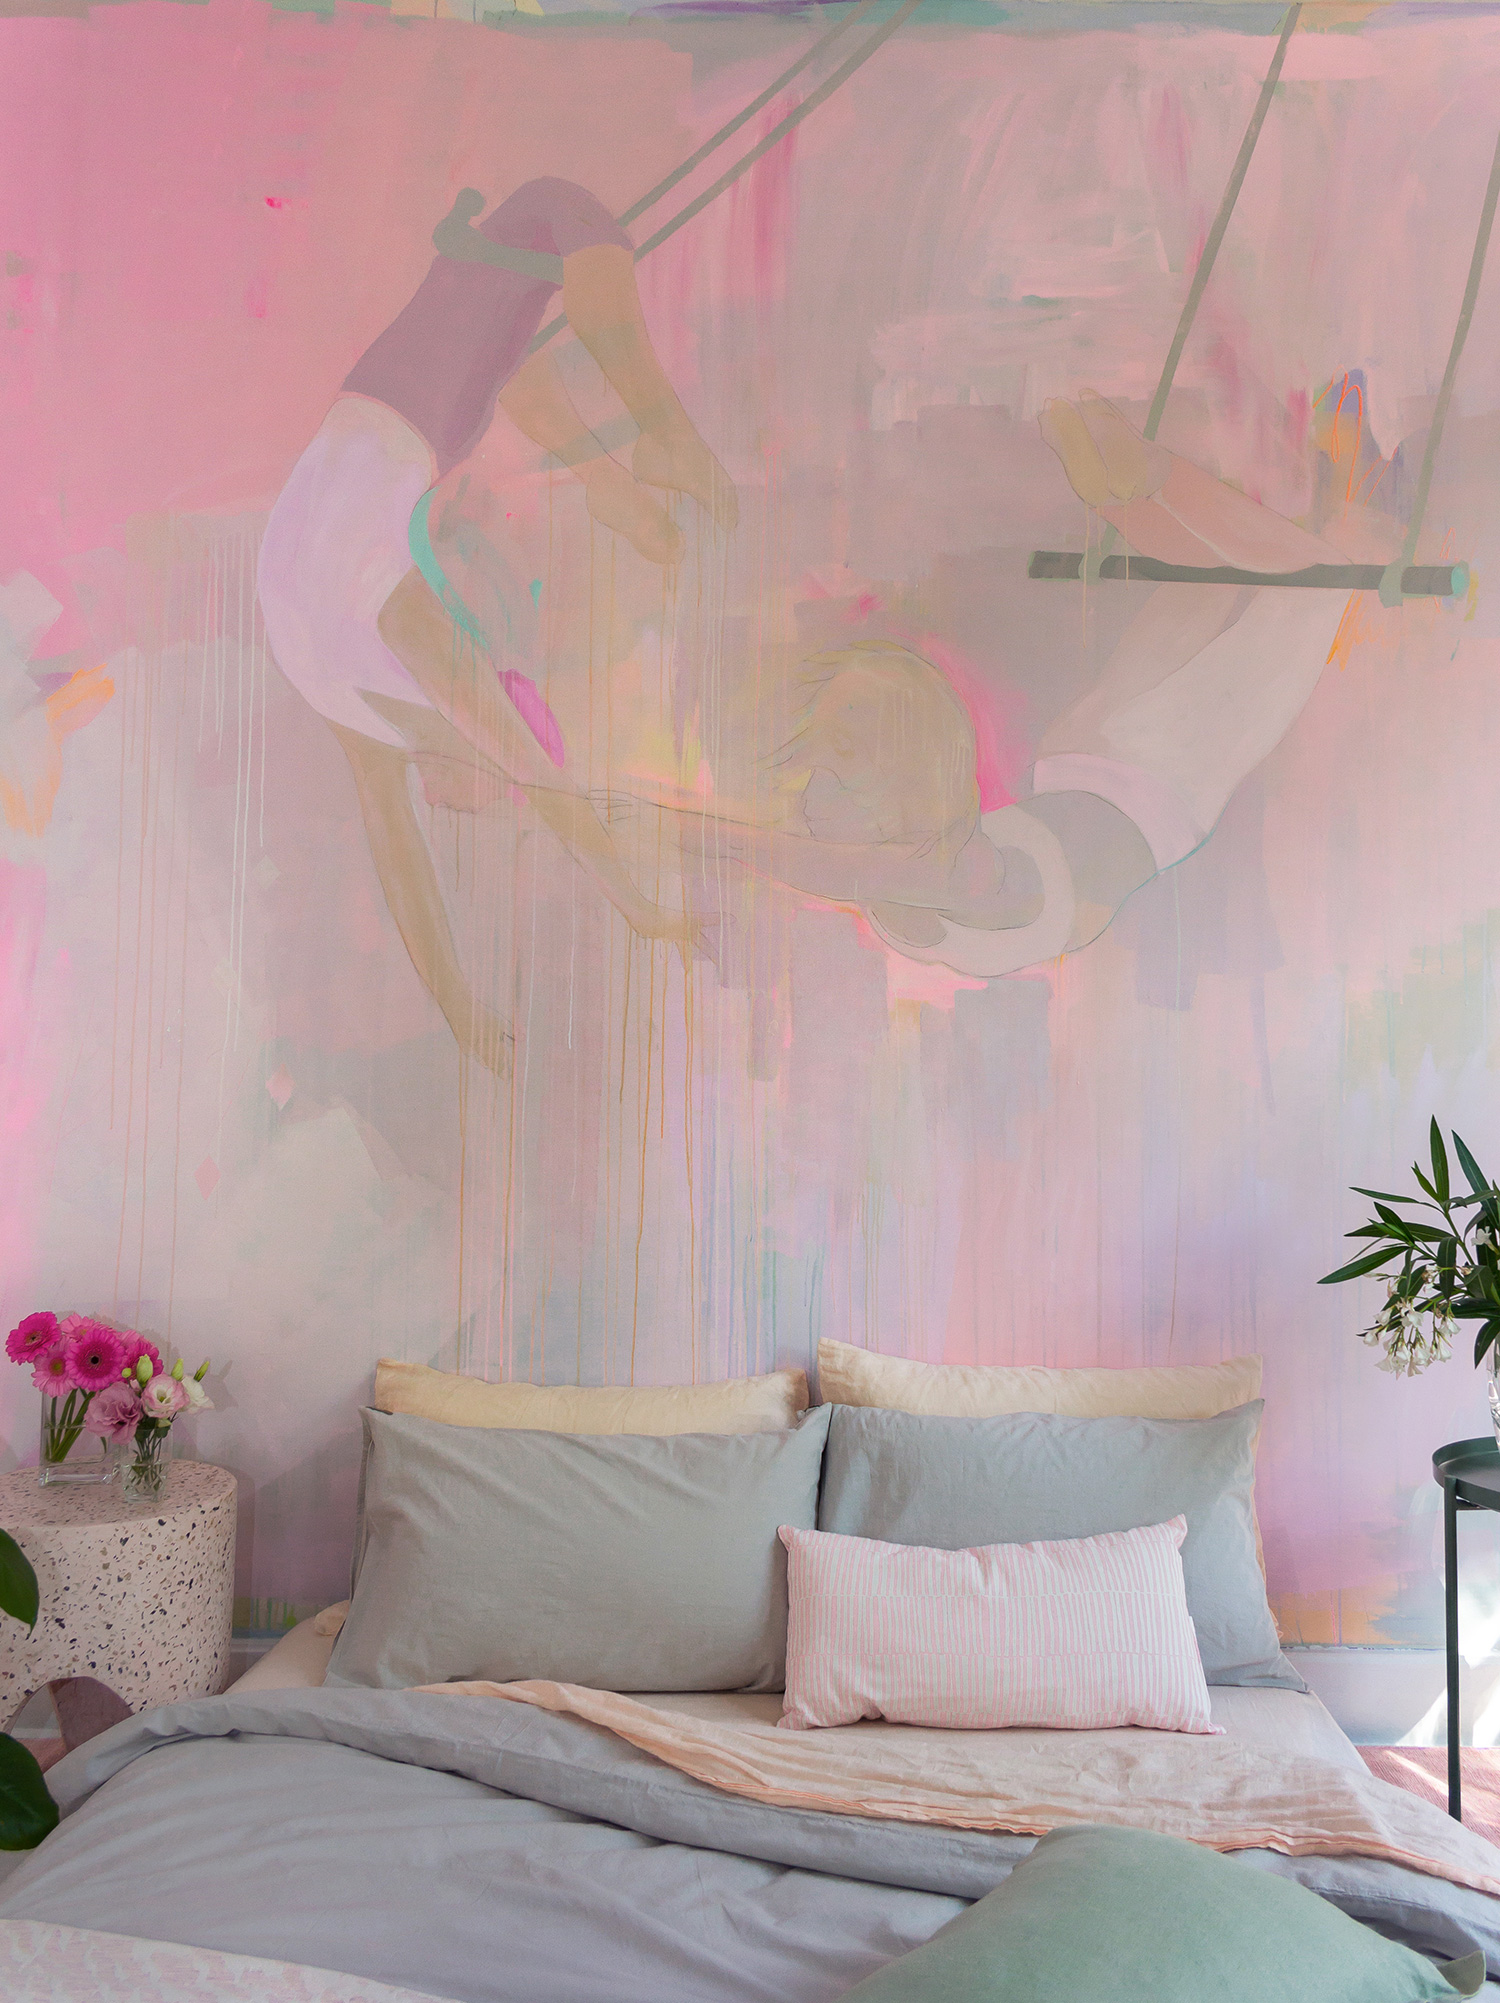 Modern pink bedroom featuring a unique hand painted abstract mural with two trapeze artists. The bedroom is styled with pastel bedding, flowers and pink terrazzo stump.